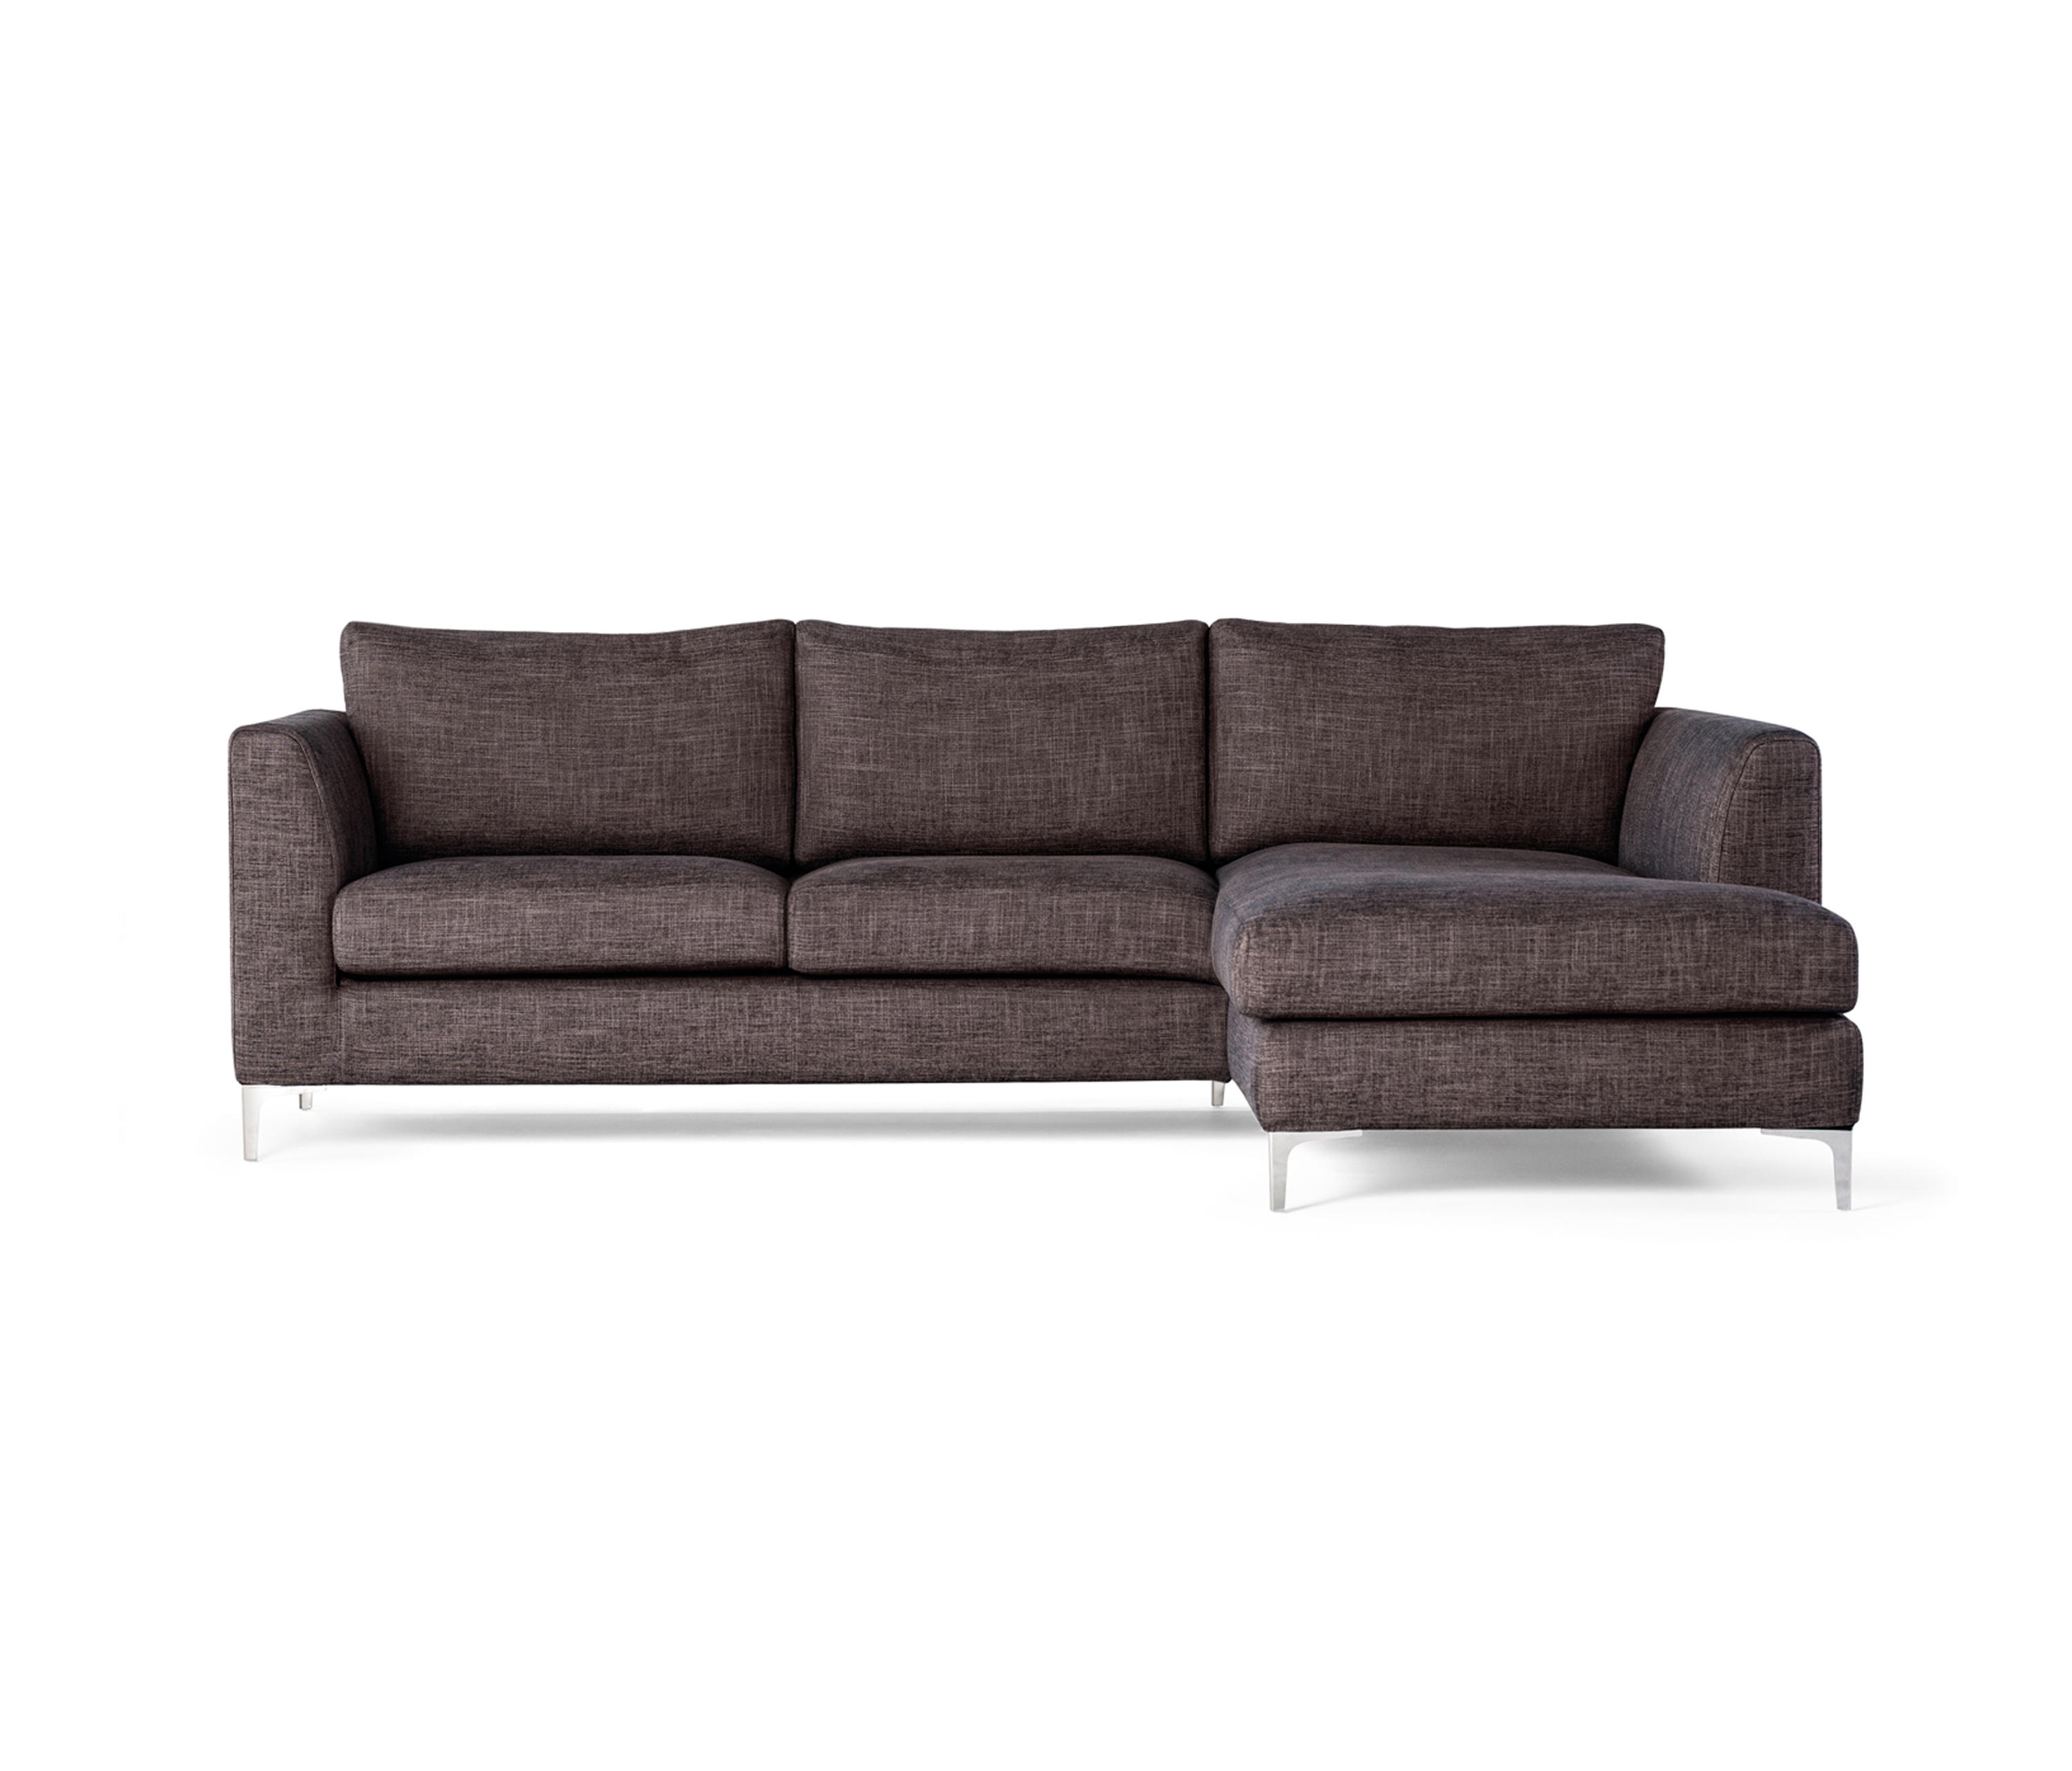 Basic sofa divani prostoria architonic for Prostoria divani